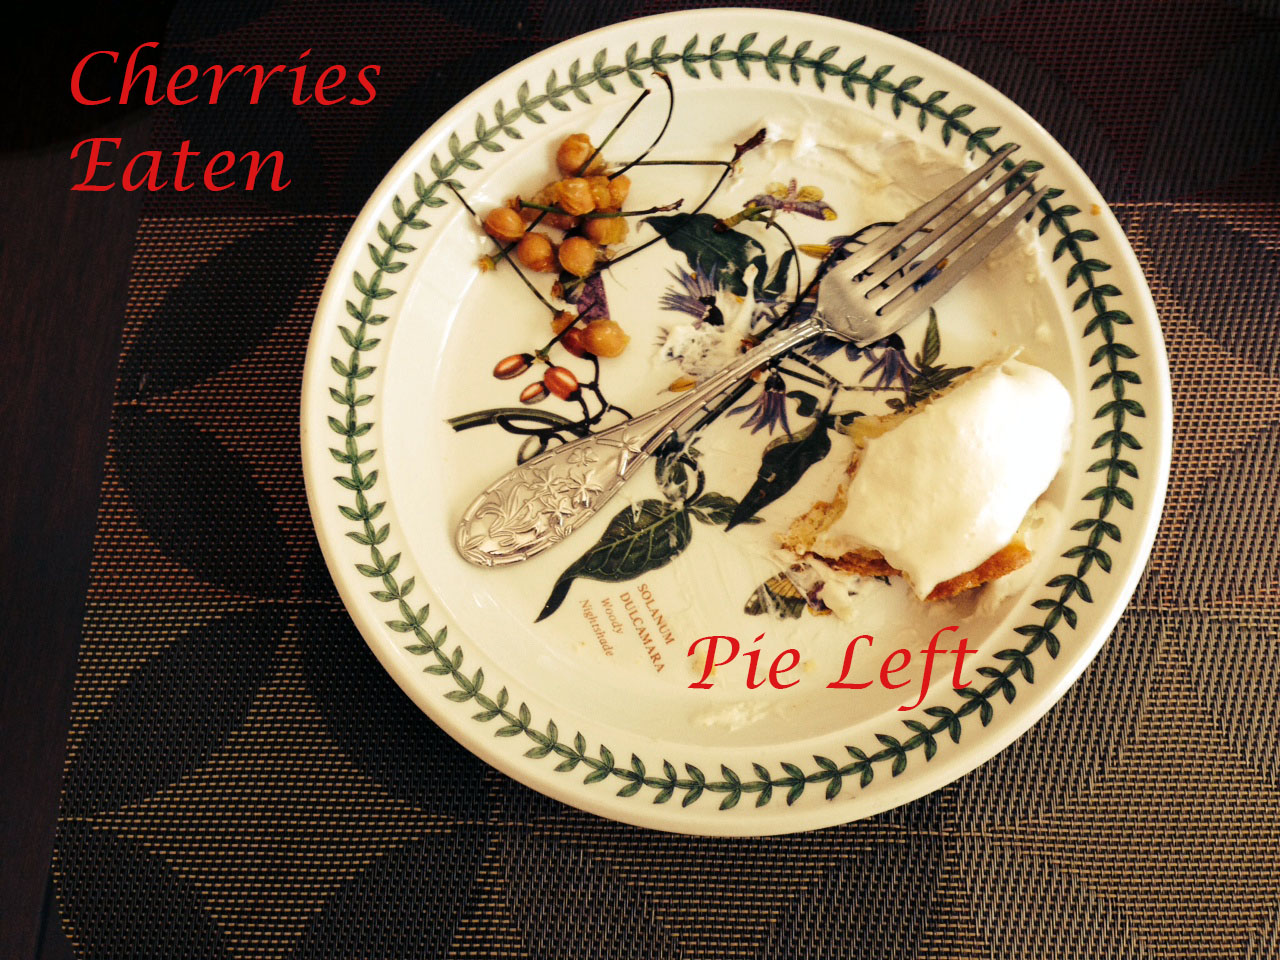 Plate with cherry pits and part of a pie slice